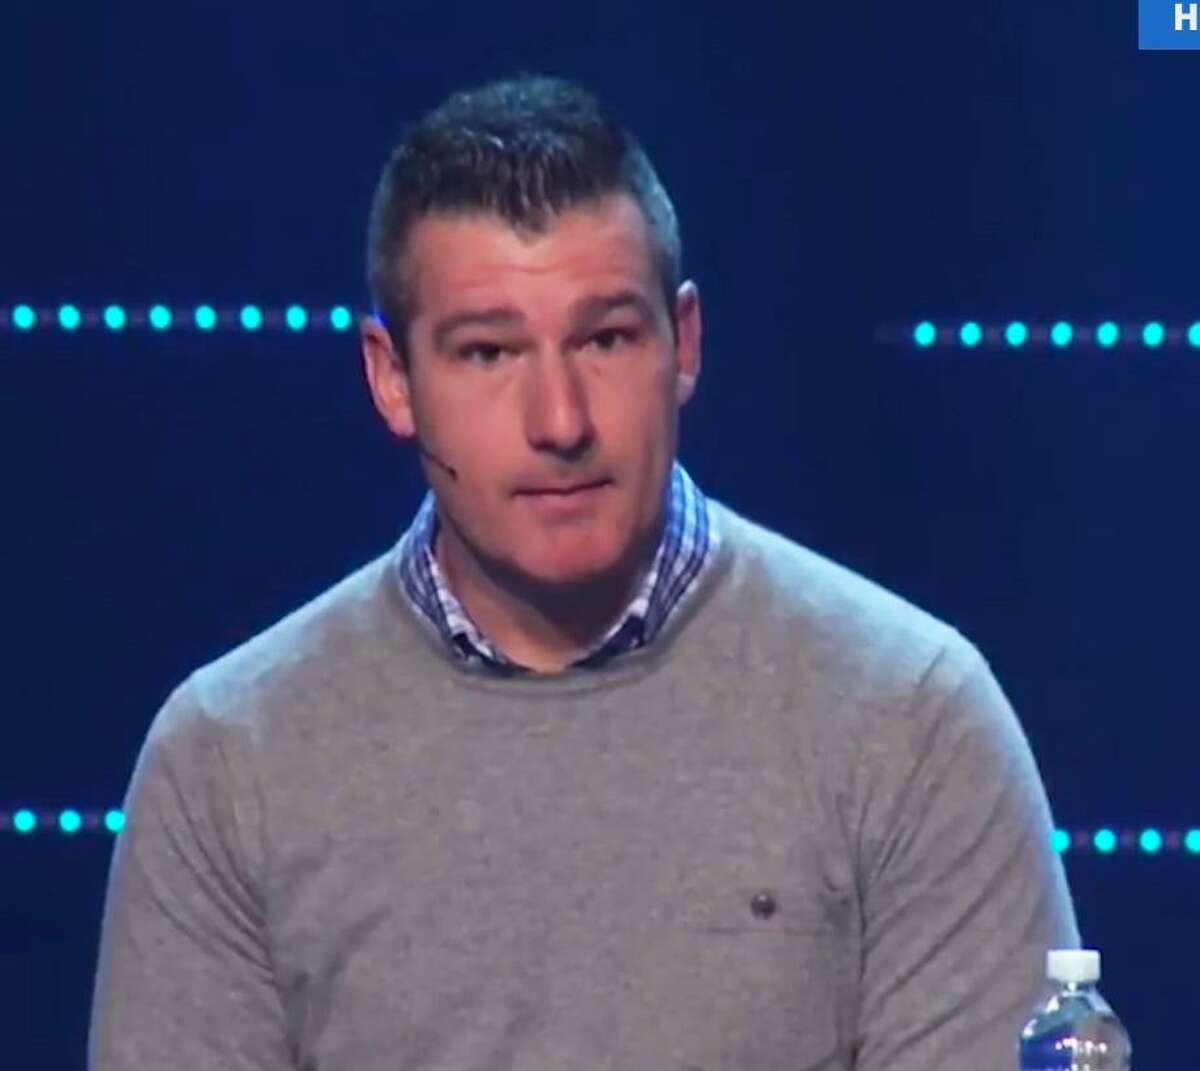 Andy Savage, a pastor at a Memphis megachurch, resigned as the church's pastor in March after an internal investigation into his assault of 17-year-old Jules Woodson in 1998 when he was youth pastor at a Woodlands church.